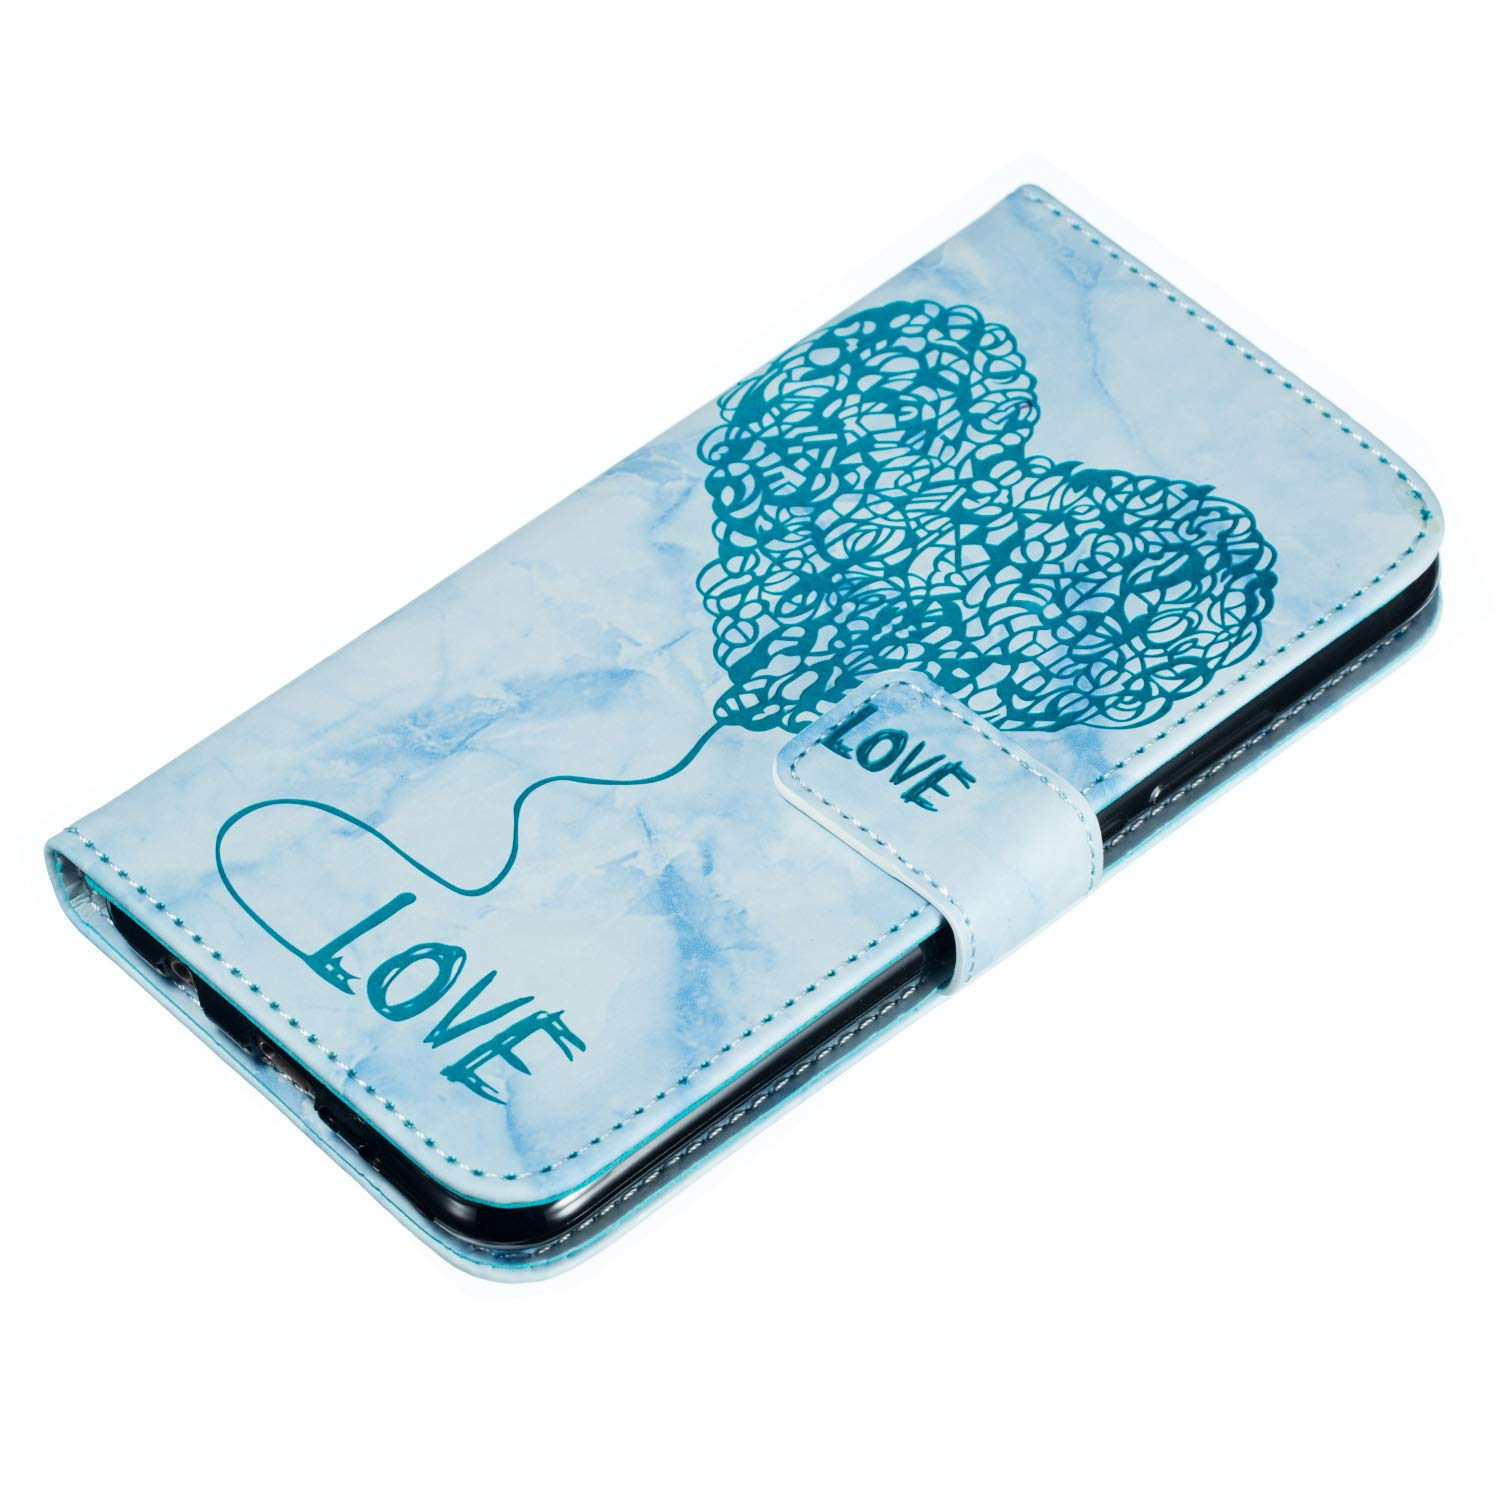 Gaufrage PU Bumper Case,Cuir PU Housse Protection Antichoc Coquille Coque pour Huawei Mate 20 Lite Bleu Carols Coque Huawei Mate 20 Lite